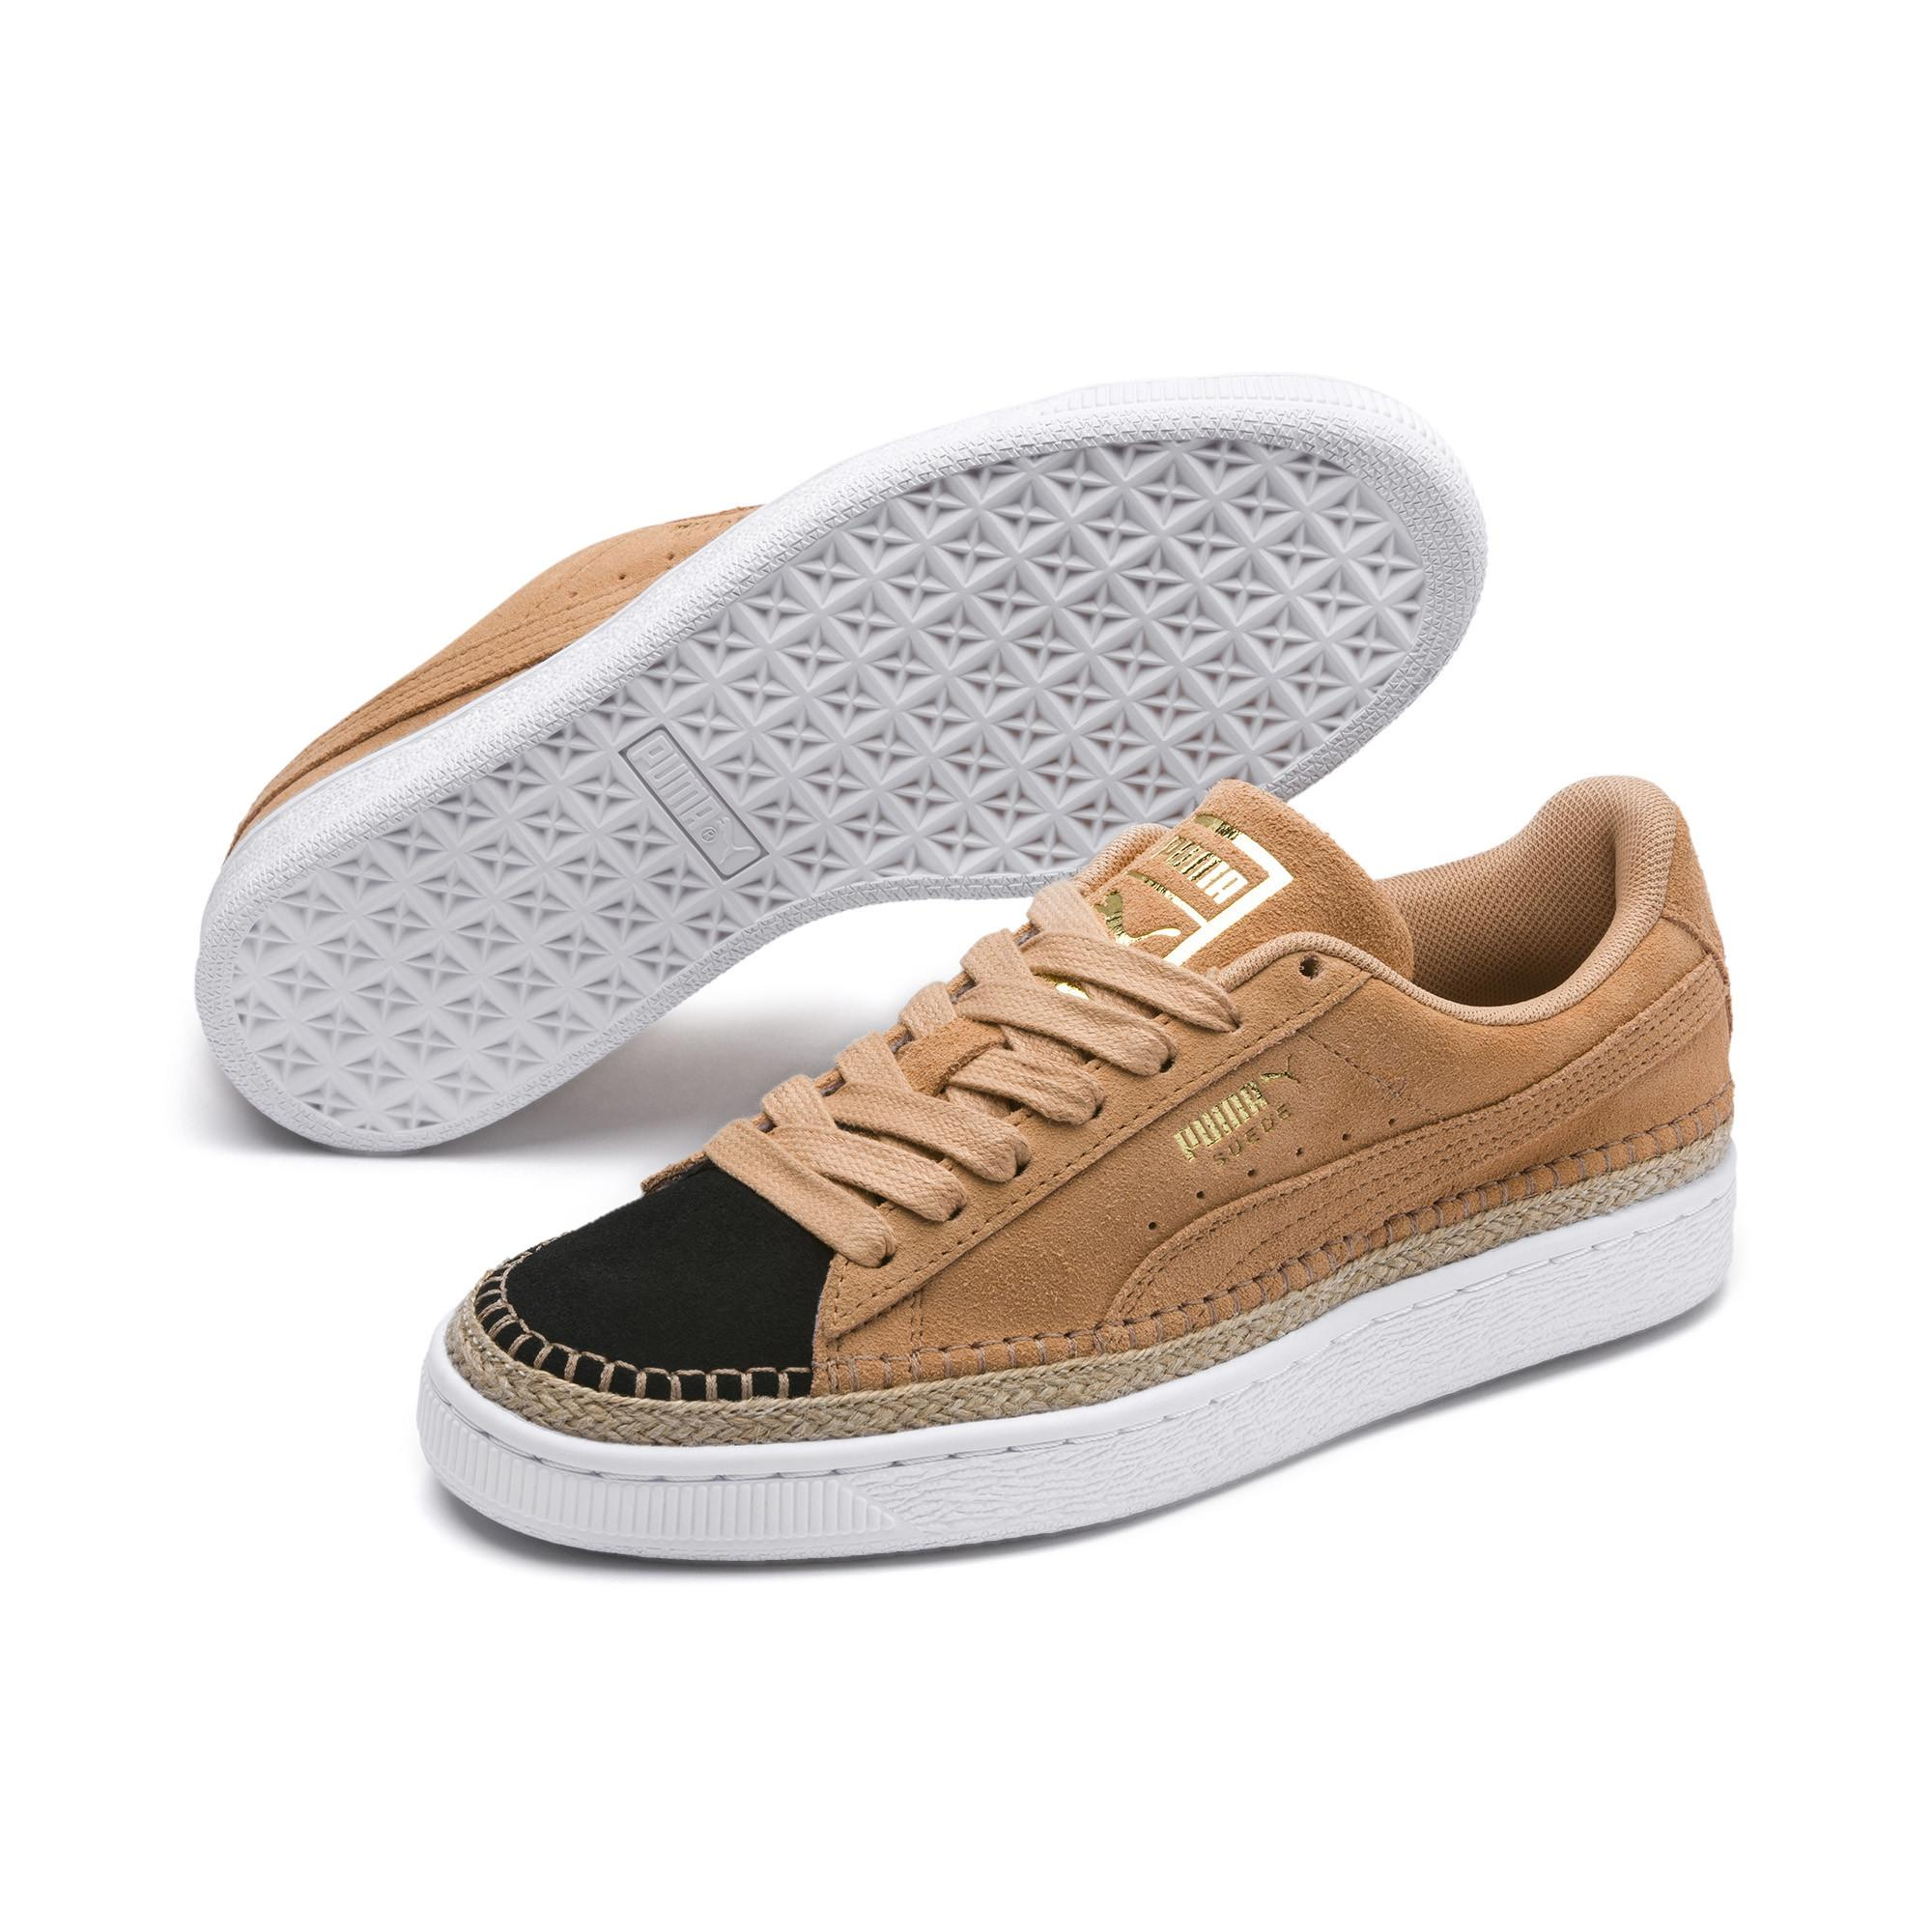 PUMA Suede Sneakerdrille - Save 57% - Lyst